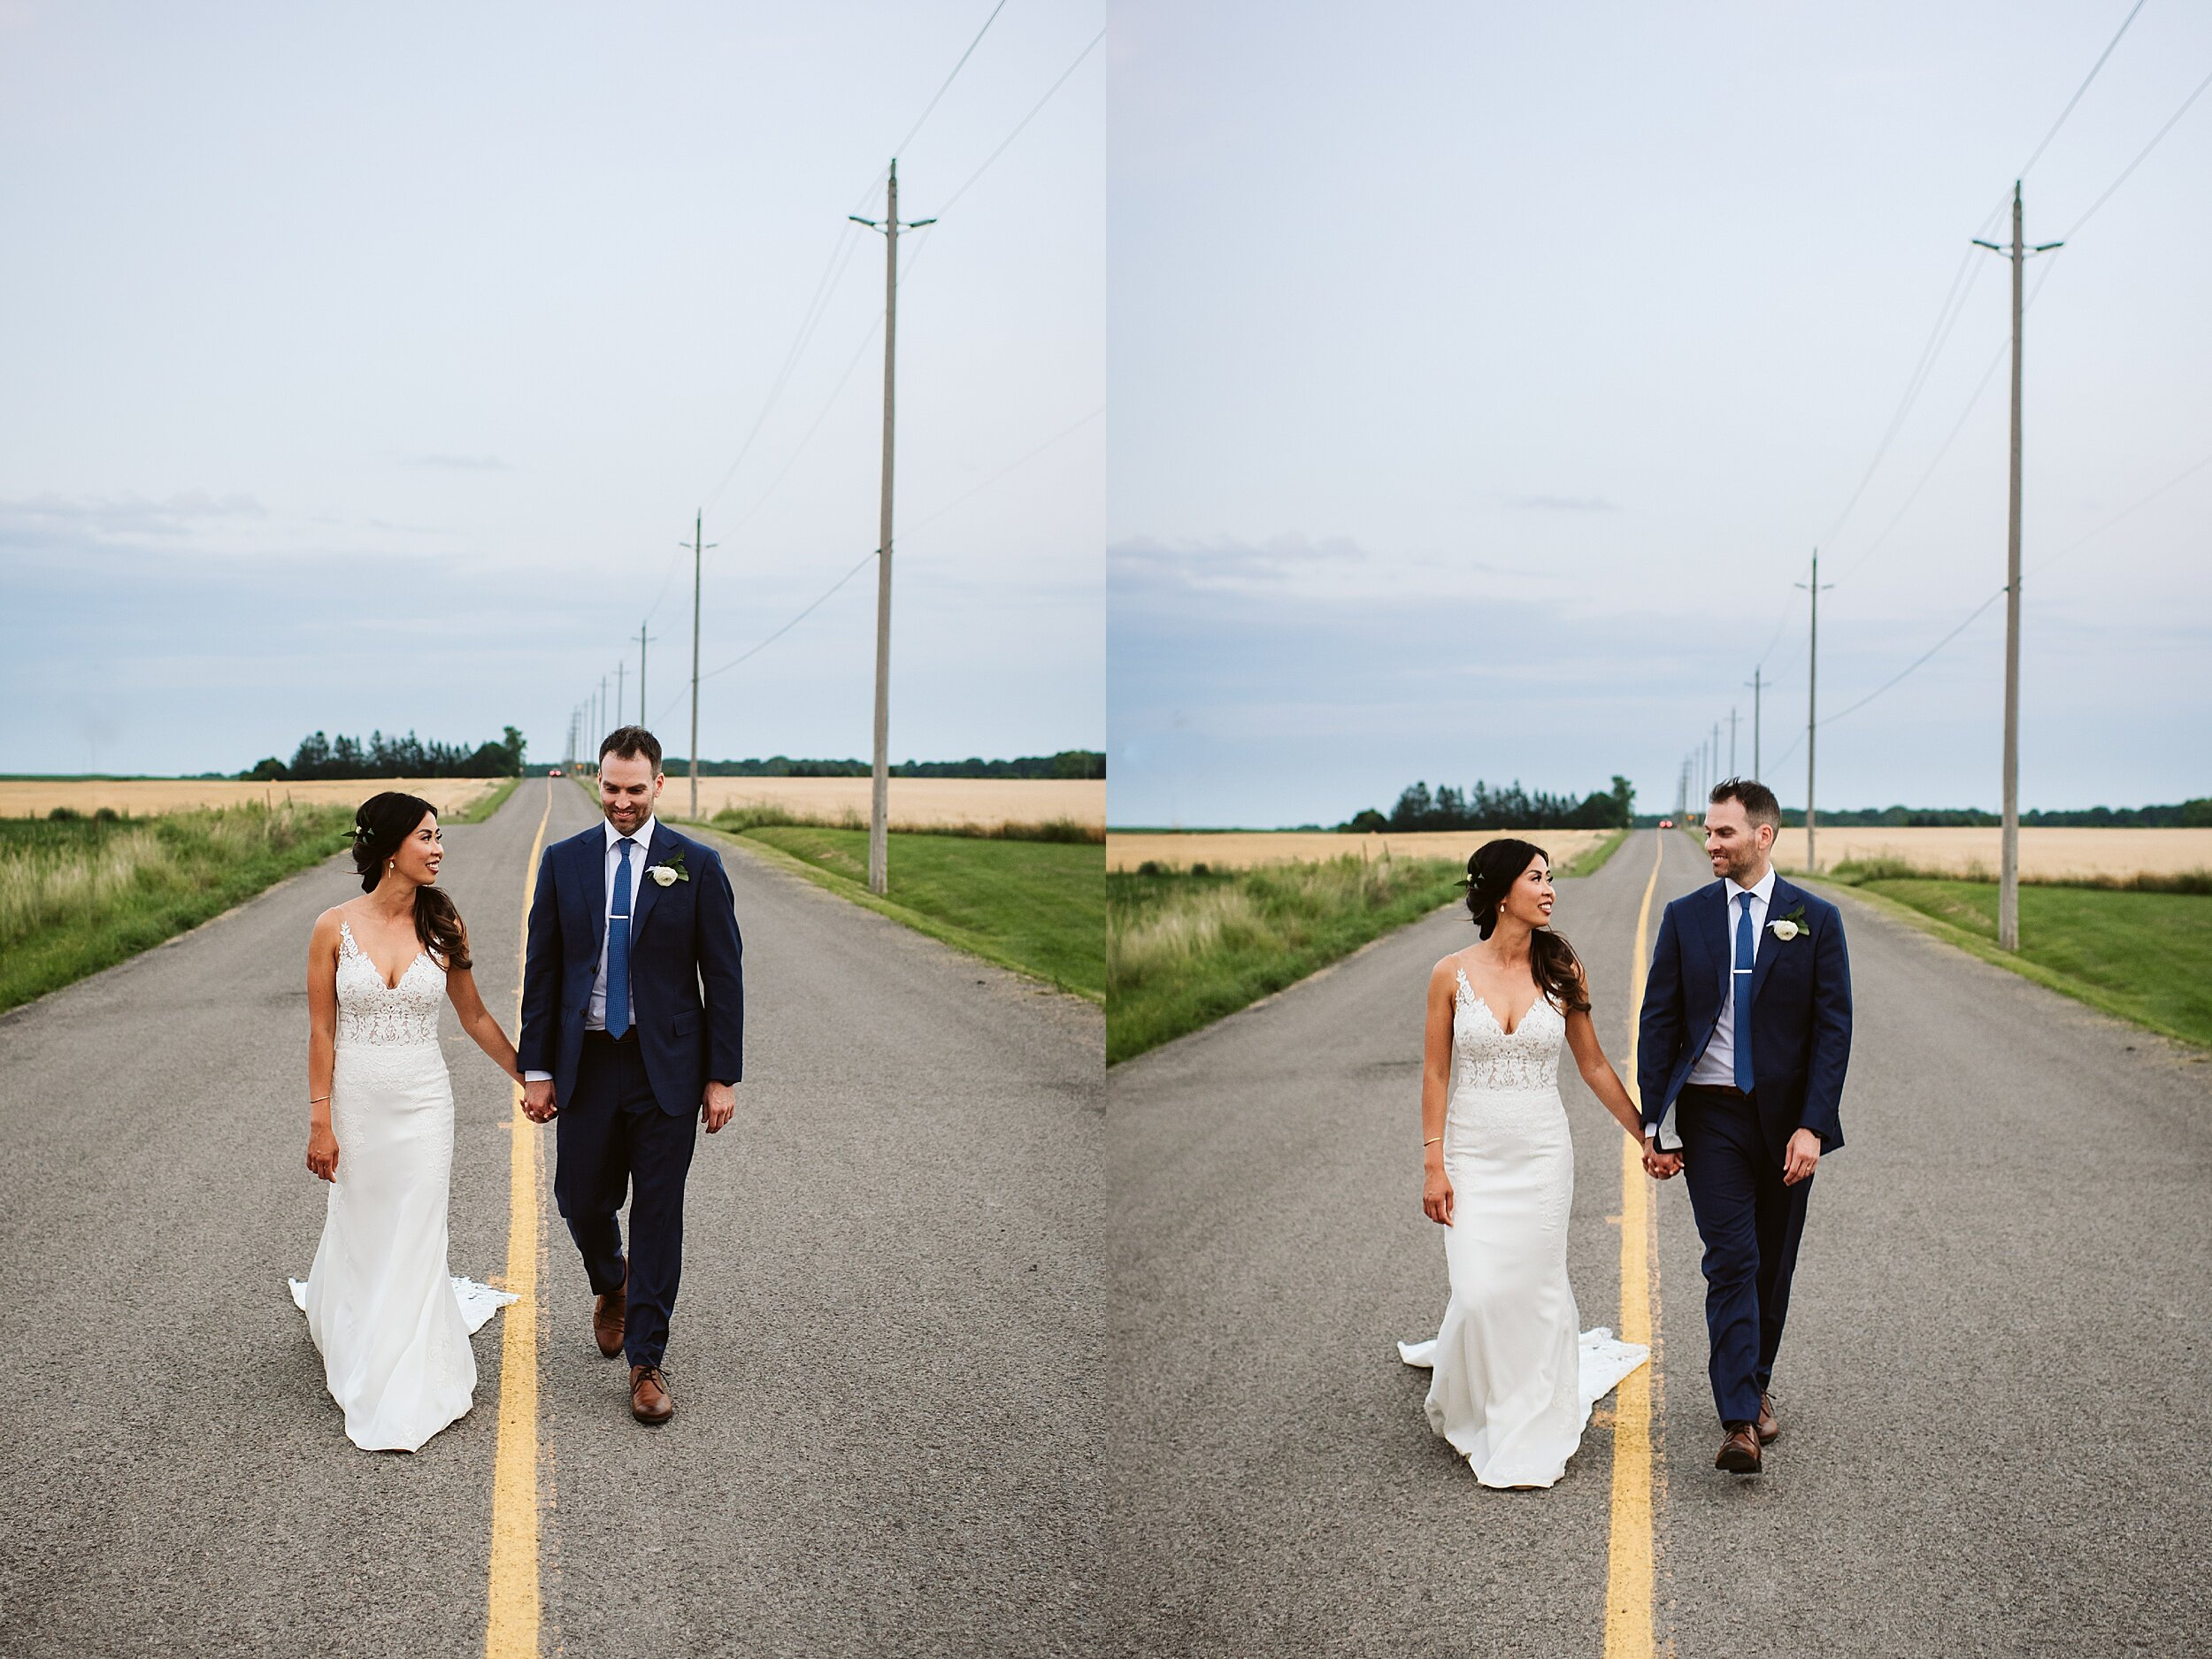 Glen_Drummon_Farm_Wedding_Toronto_Photographers_Fox_Photography_Dyments_0066.jpg